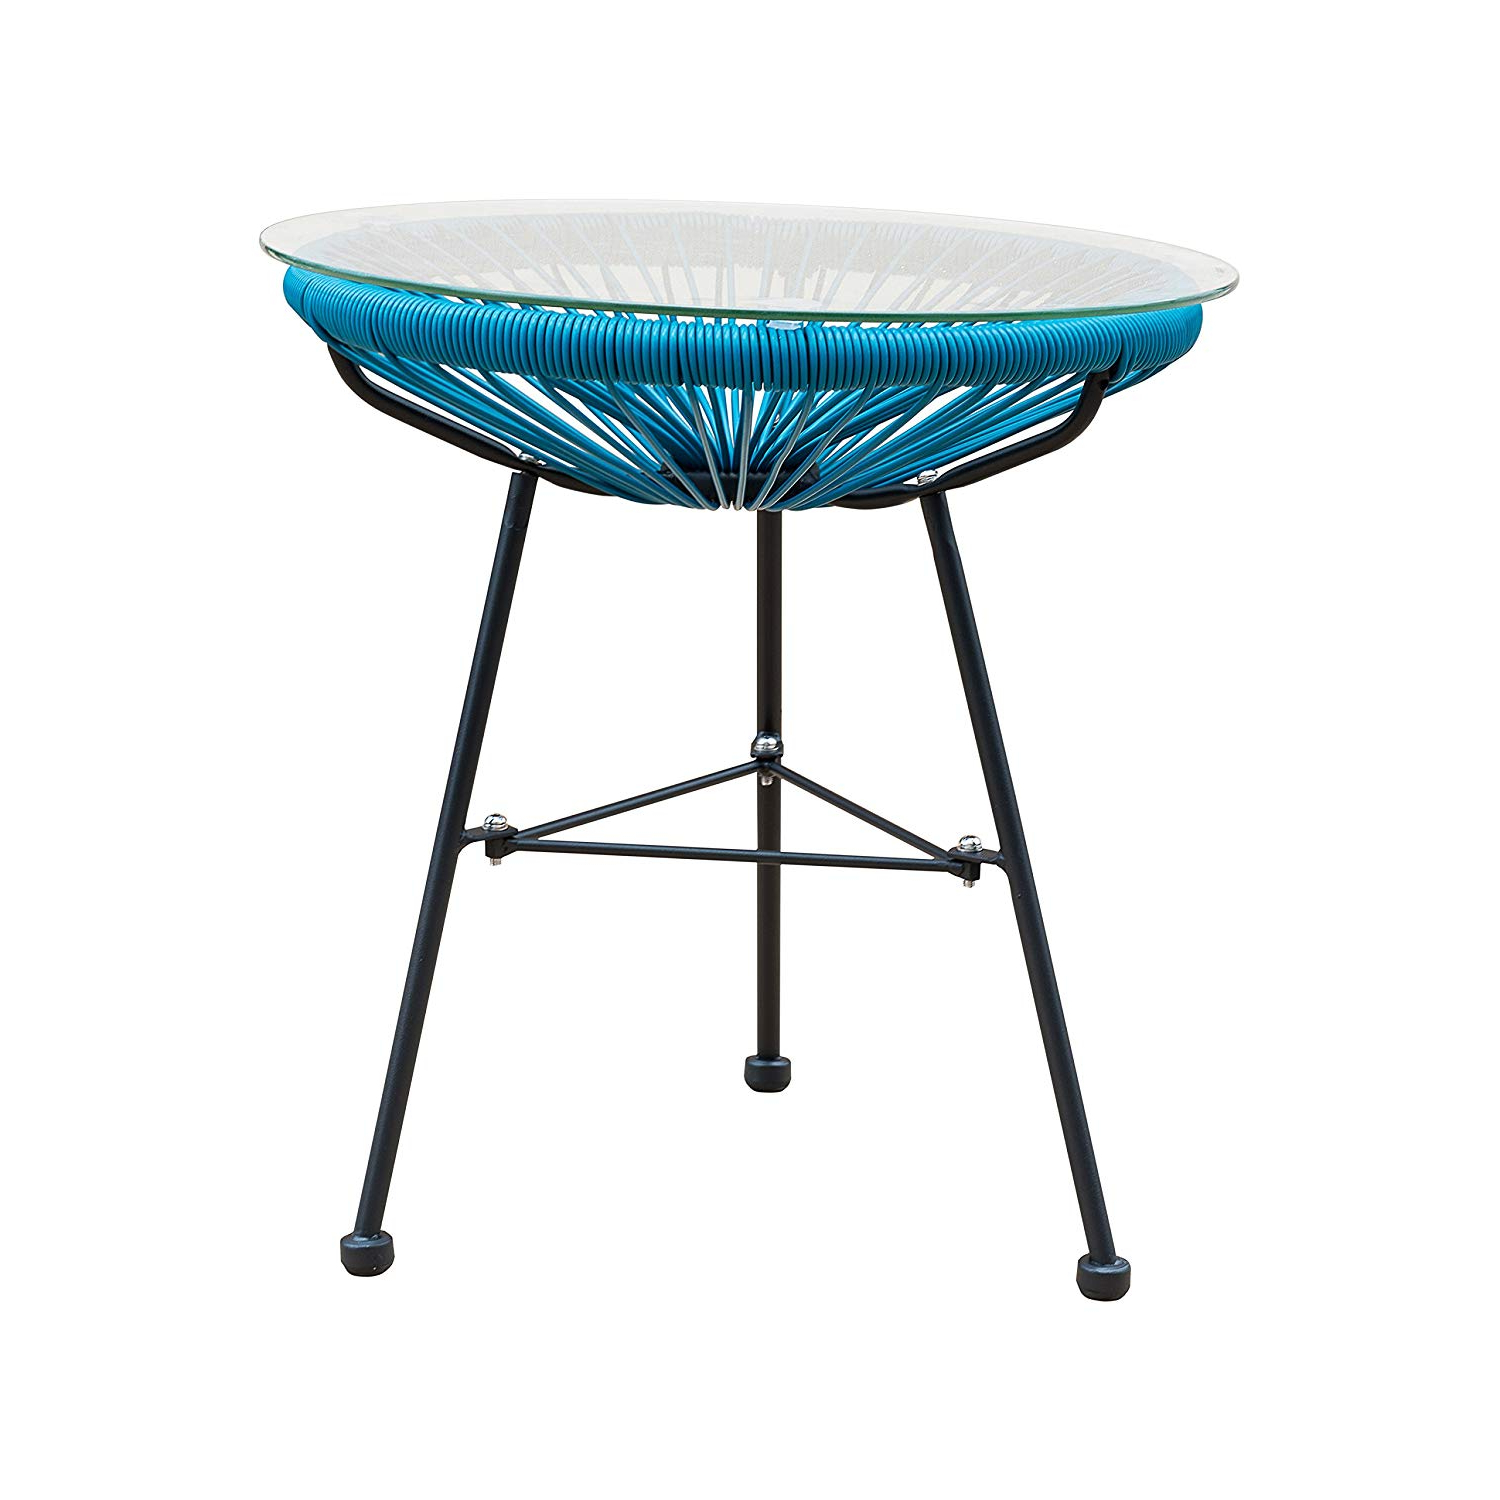 Cheap Glass Top Patio, Find Glass Top Patio Deals On Line At Alibaba Intended For Fashionable Bradford Patiosquare Market Umbrellas (View 17 of 20)